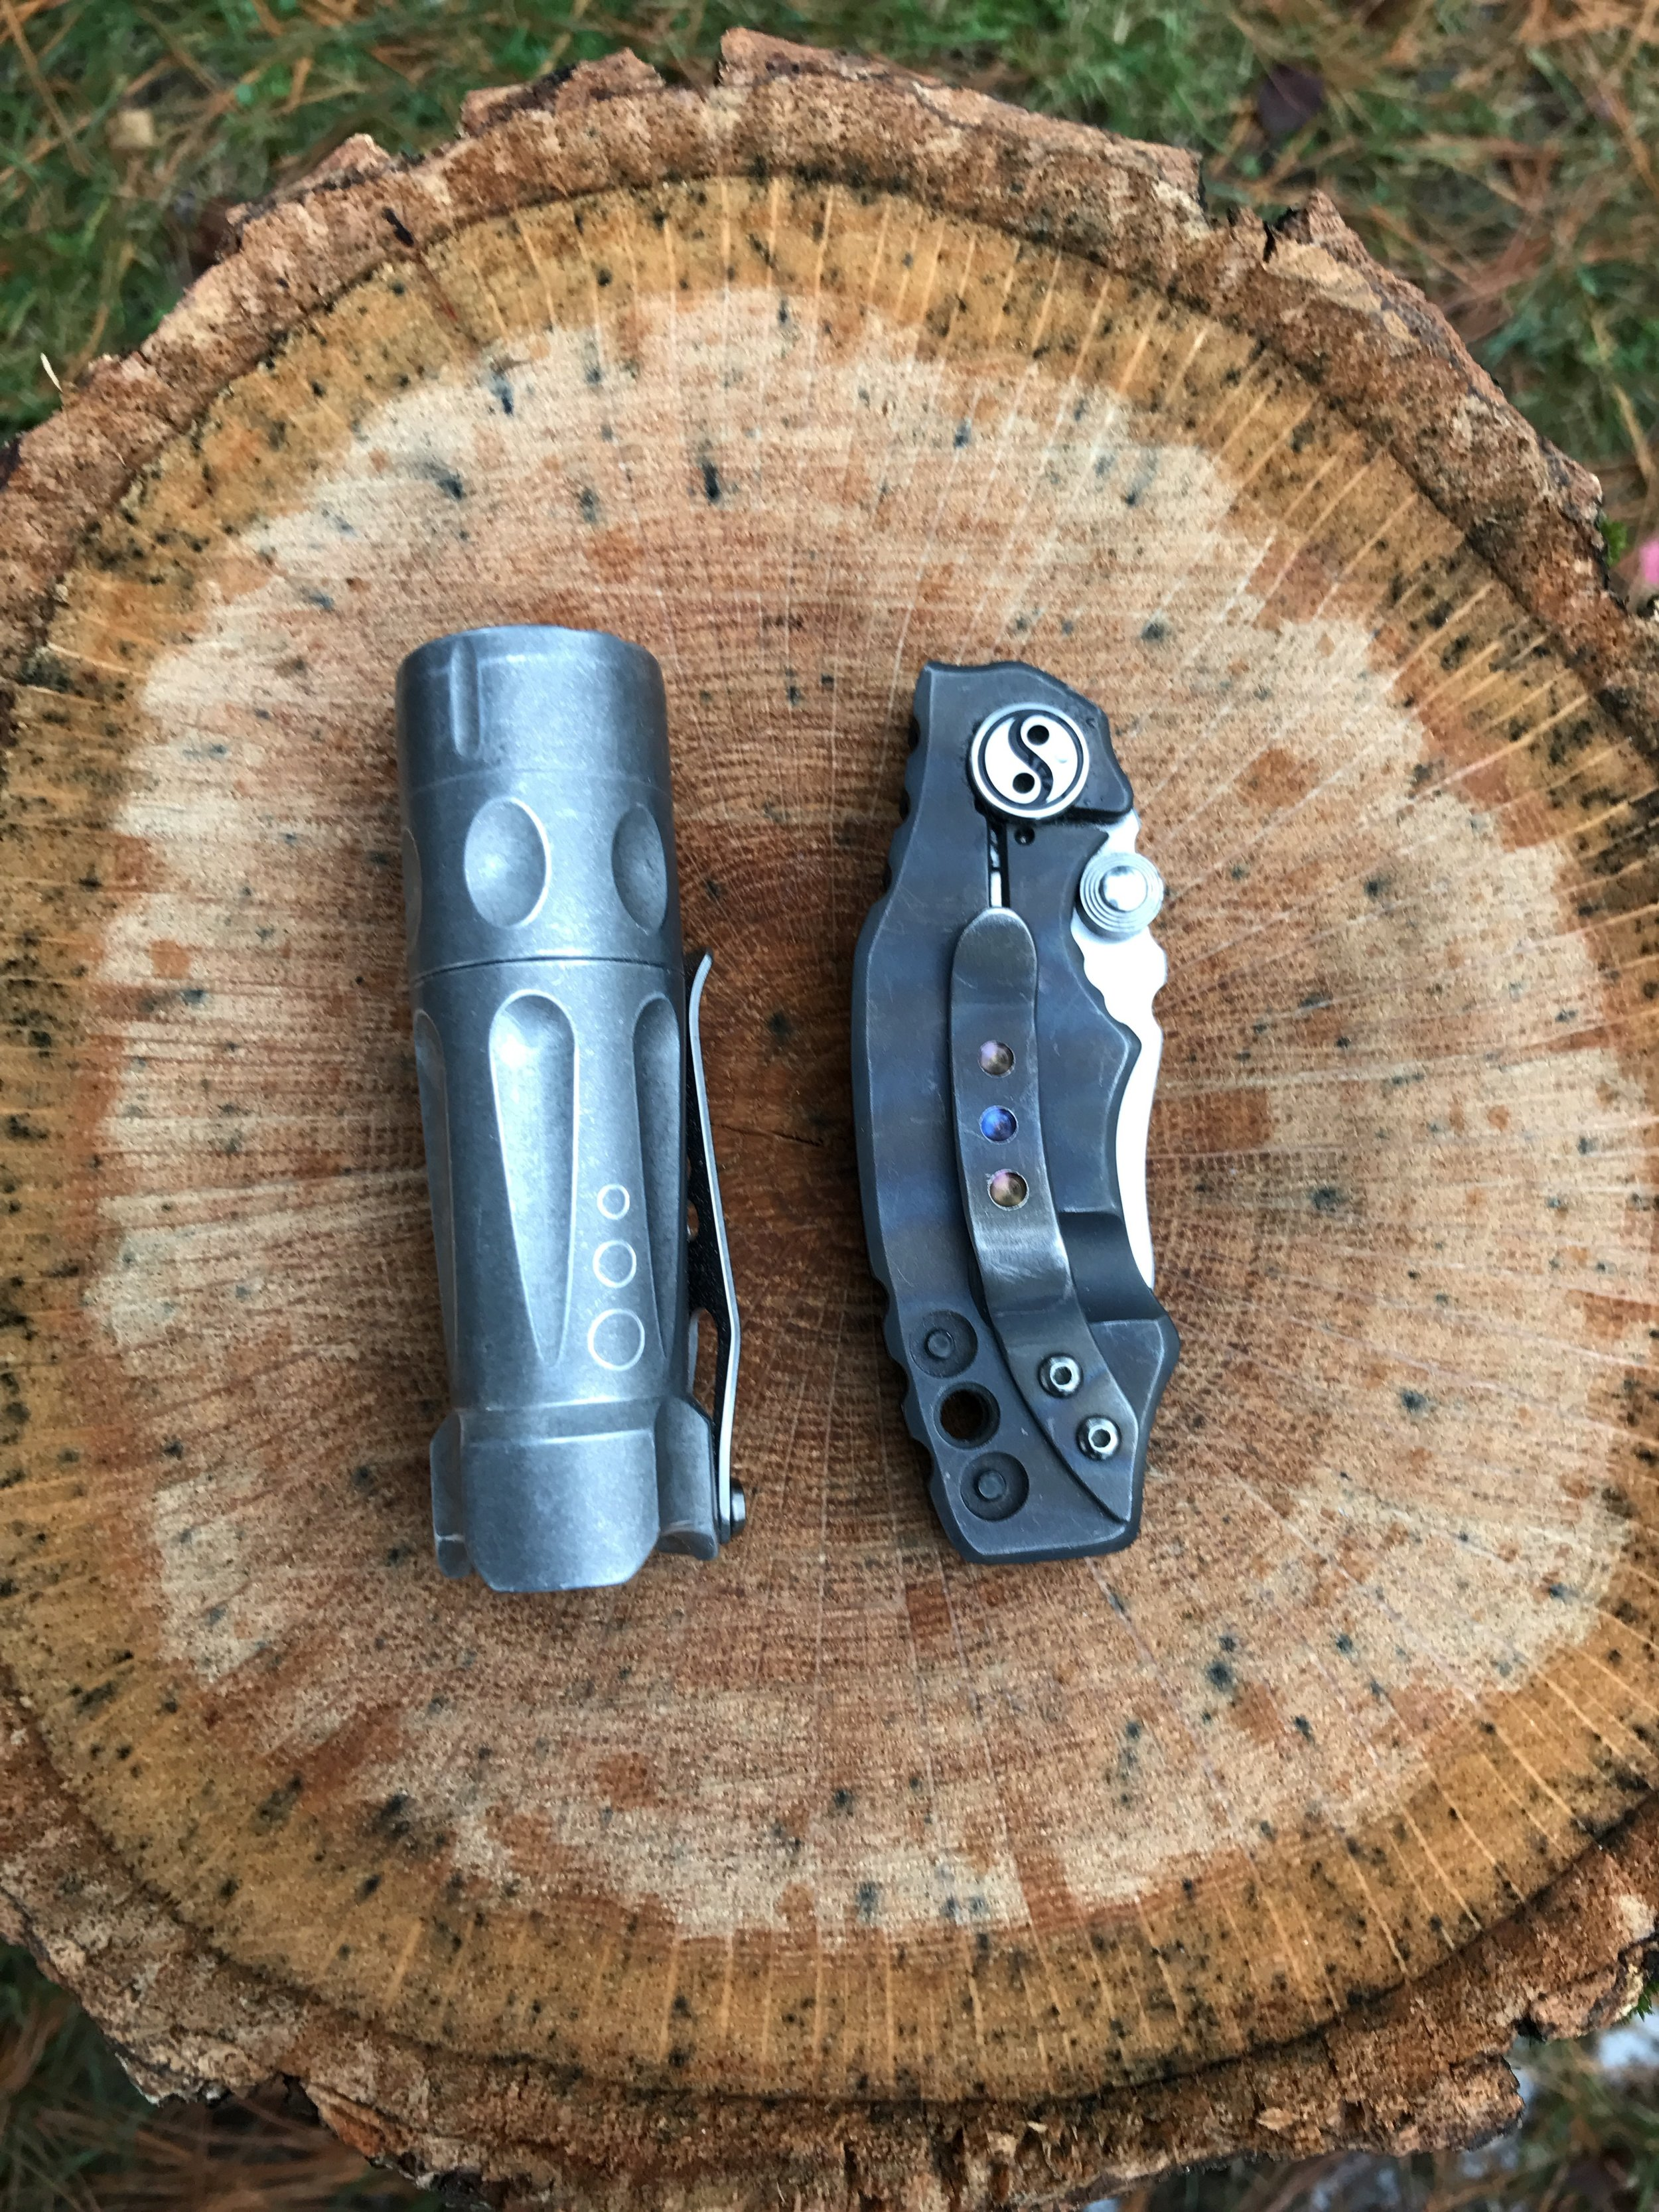 Torchlab BOSS 35 and the Yuna Knives EQ-1